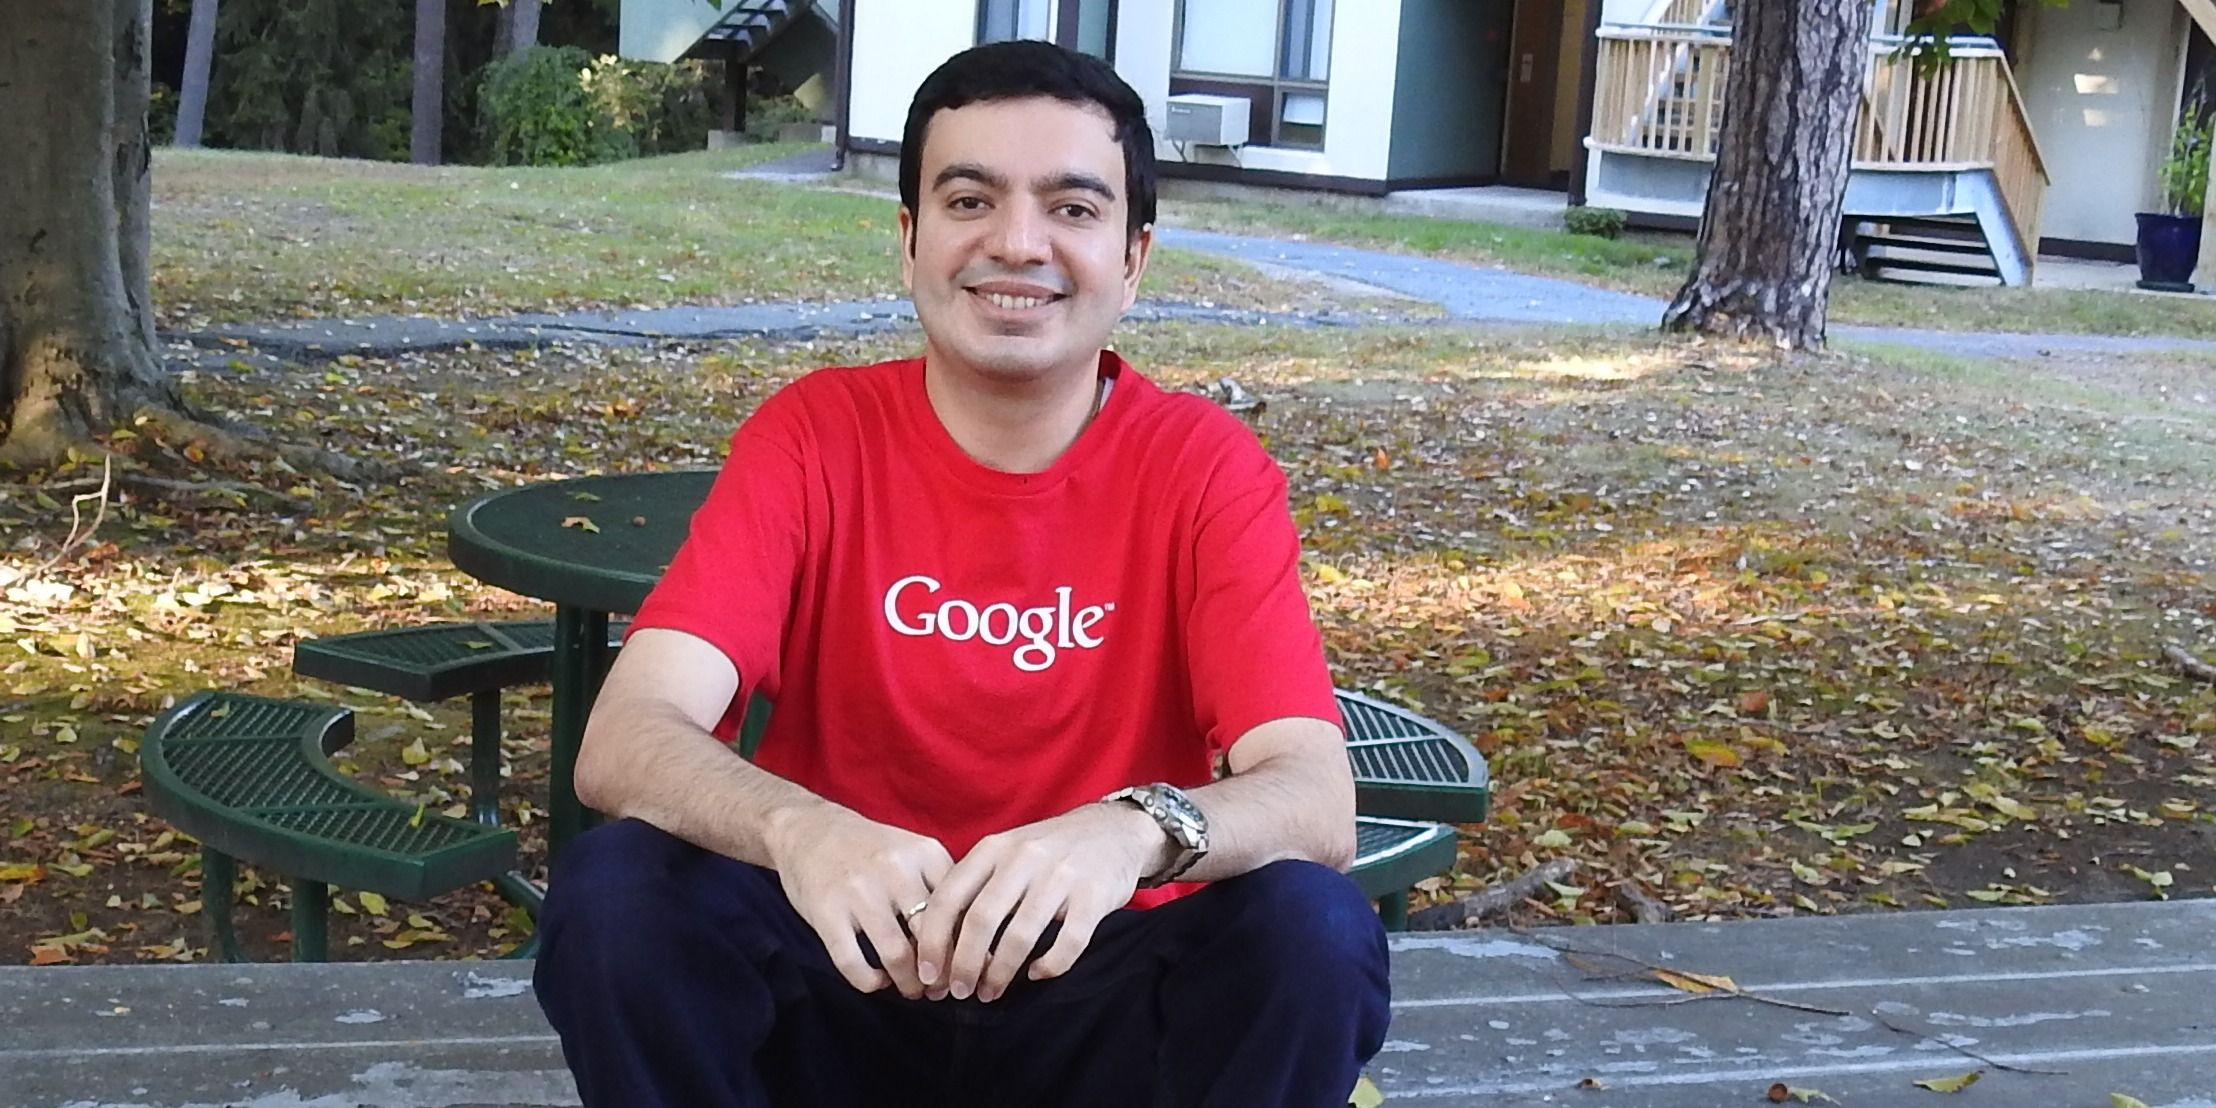 Sanmay Ved was able to buy Google.com for a minute before the accidental transaction was canceled. He's given the reward Google paid him to a charity in India.